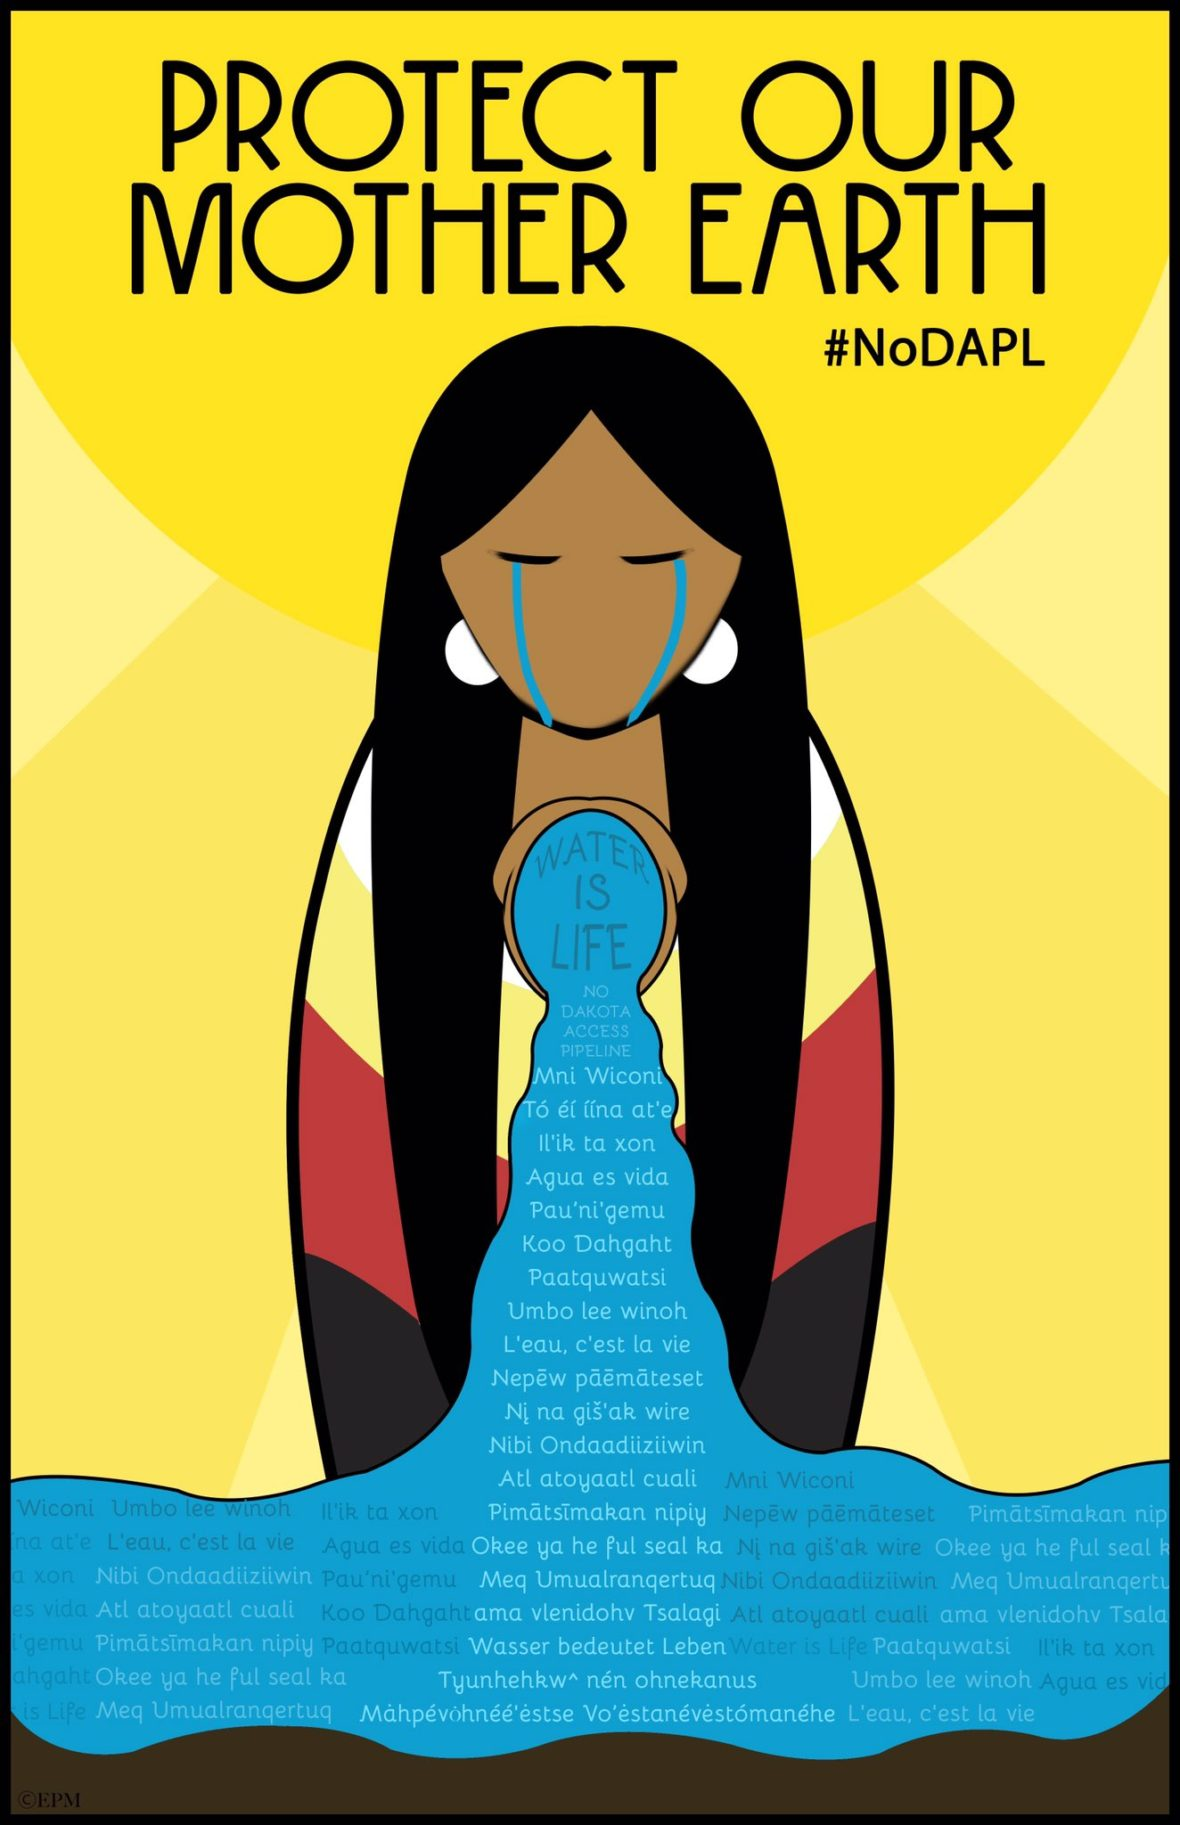 created by artist Erica Moore in support of #noDAPL